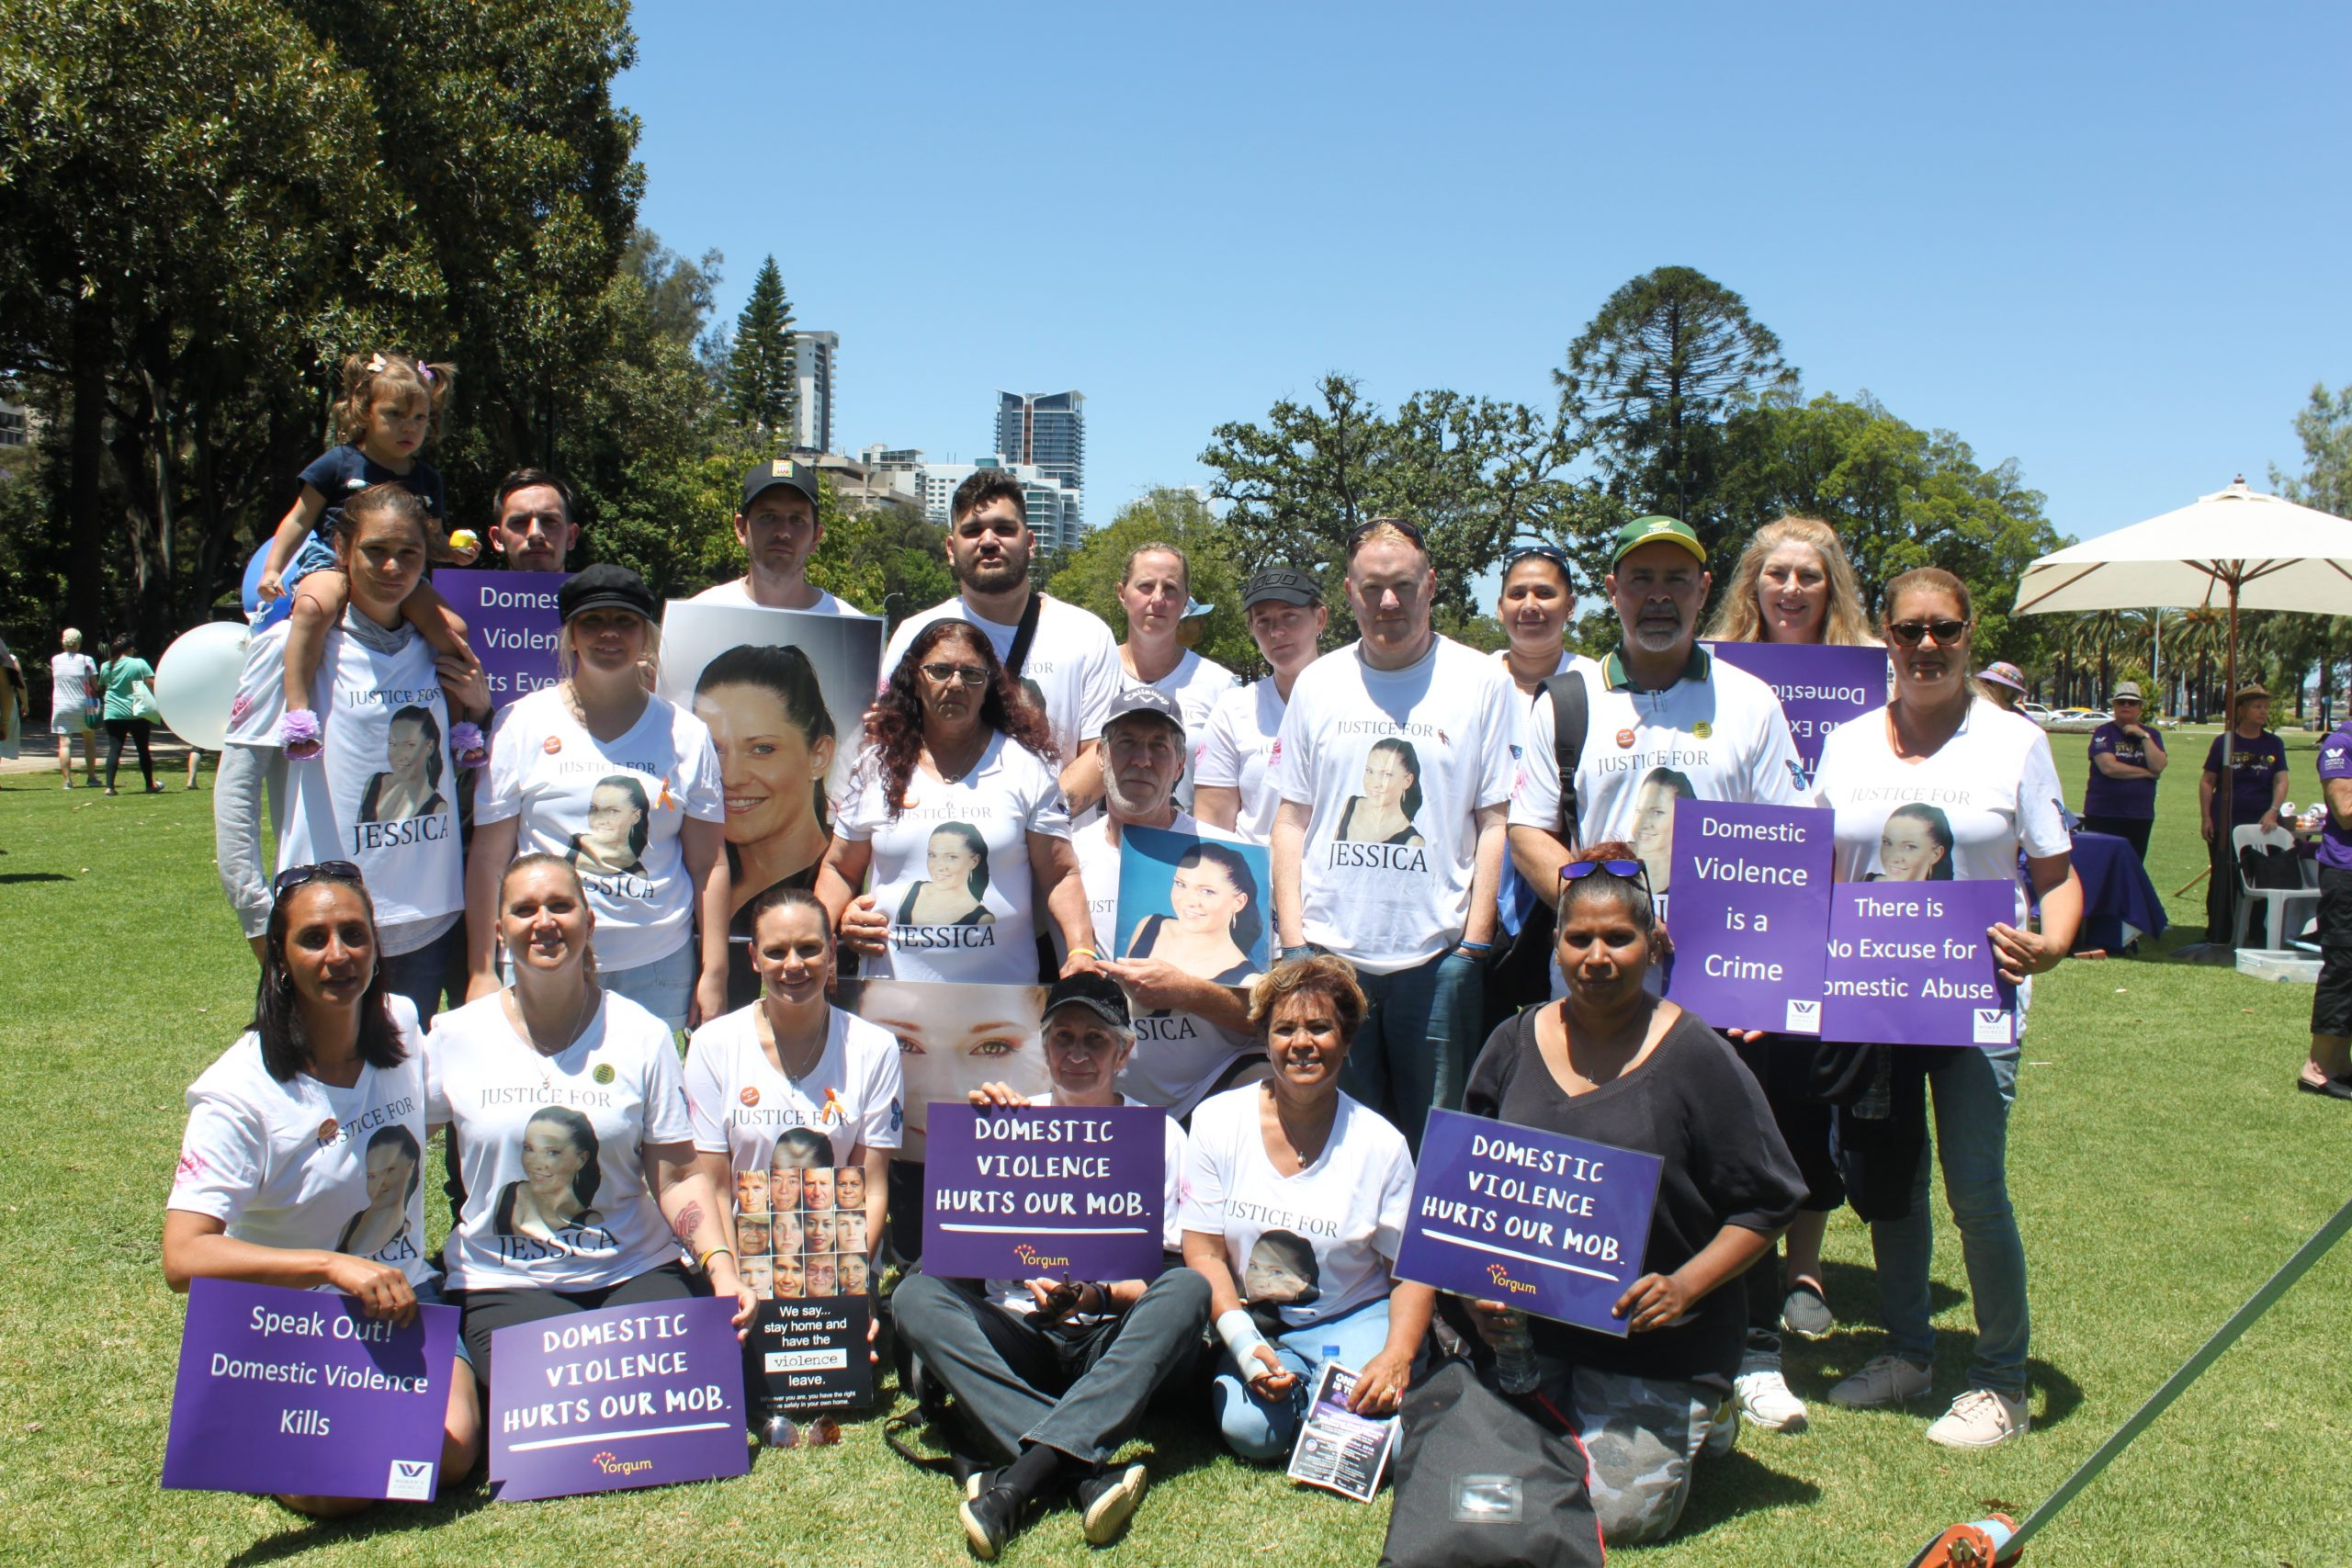 Our Hearts are Heavy as we March – 29th Annual Silent Domestic Violence Memorial March